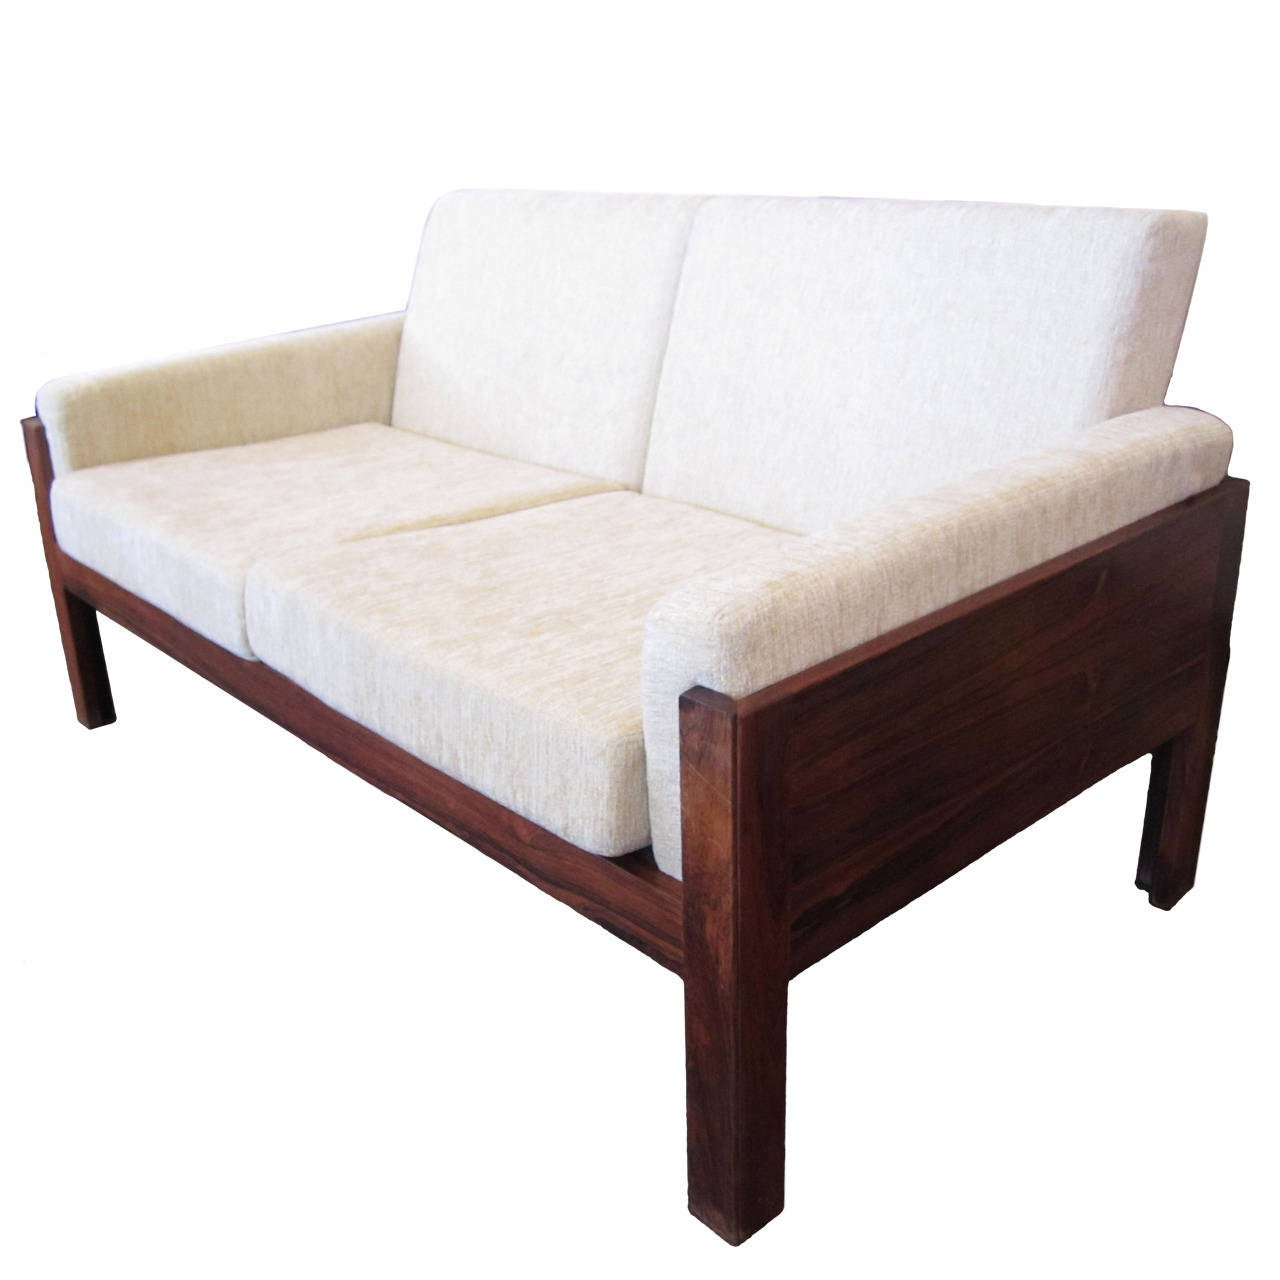 danish modern loveseat for sale at stdibs - danish modern loveseat